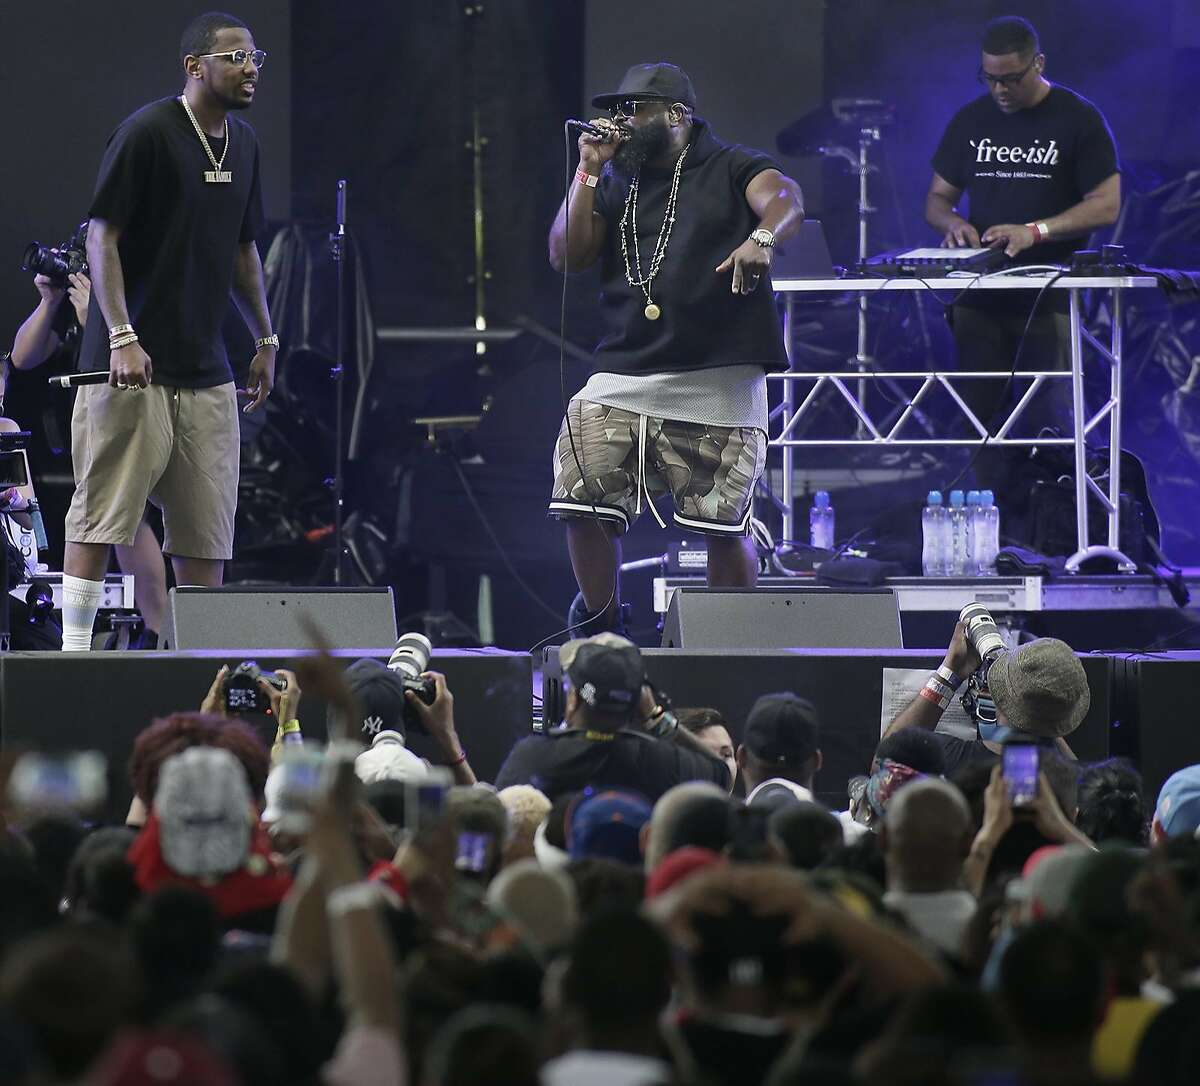 Black Thought, center, performs during the 11th annual Roots Picnic at Festival Pier in Philadelphia on Saturday, June 2, 2018. (Elizabeth Robertson/The Philadelphia Inquirer via AP)